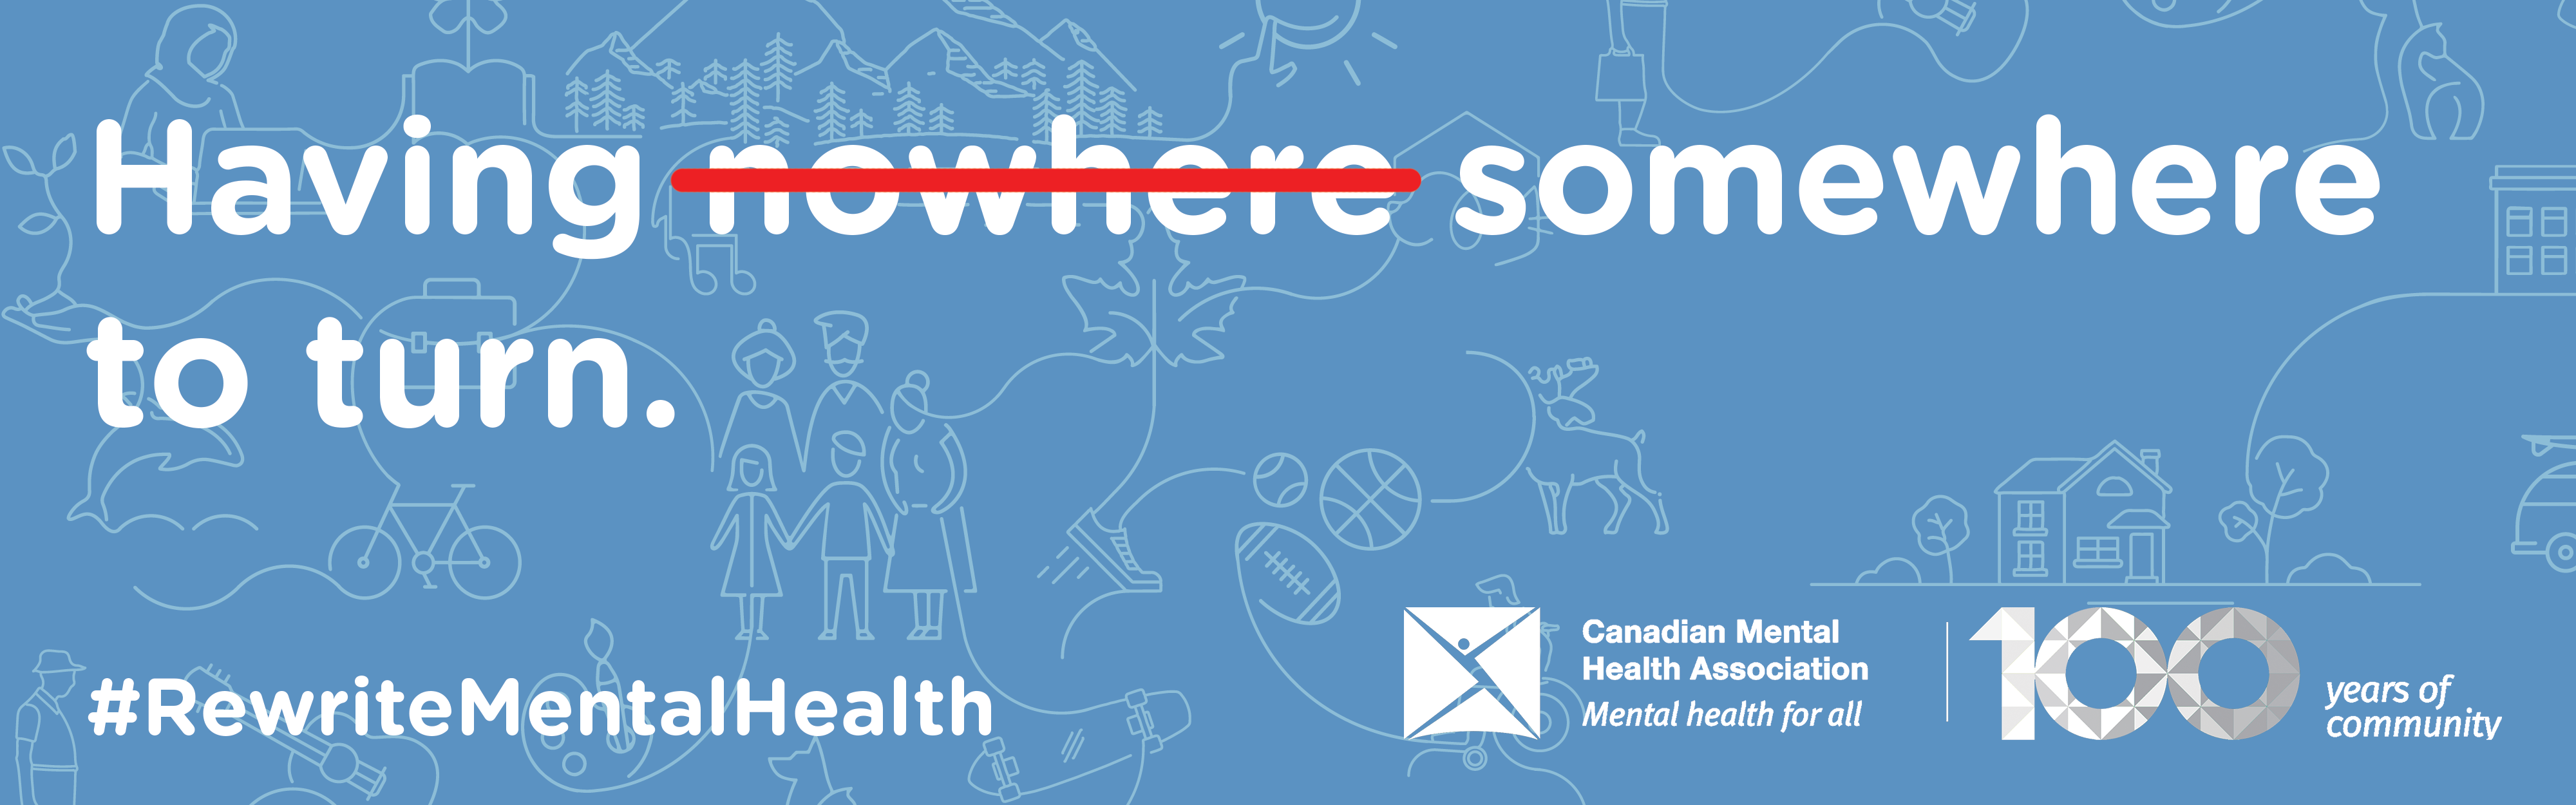 Give to rewrite the mental health story in Canada